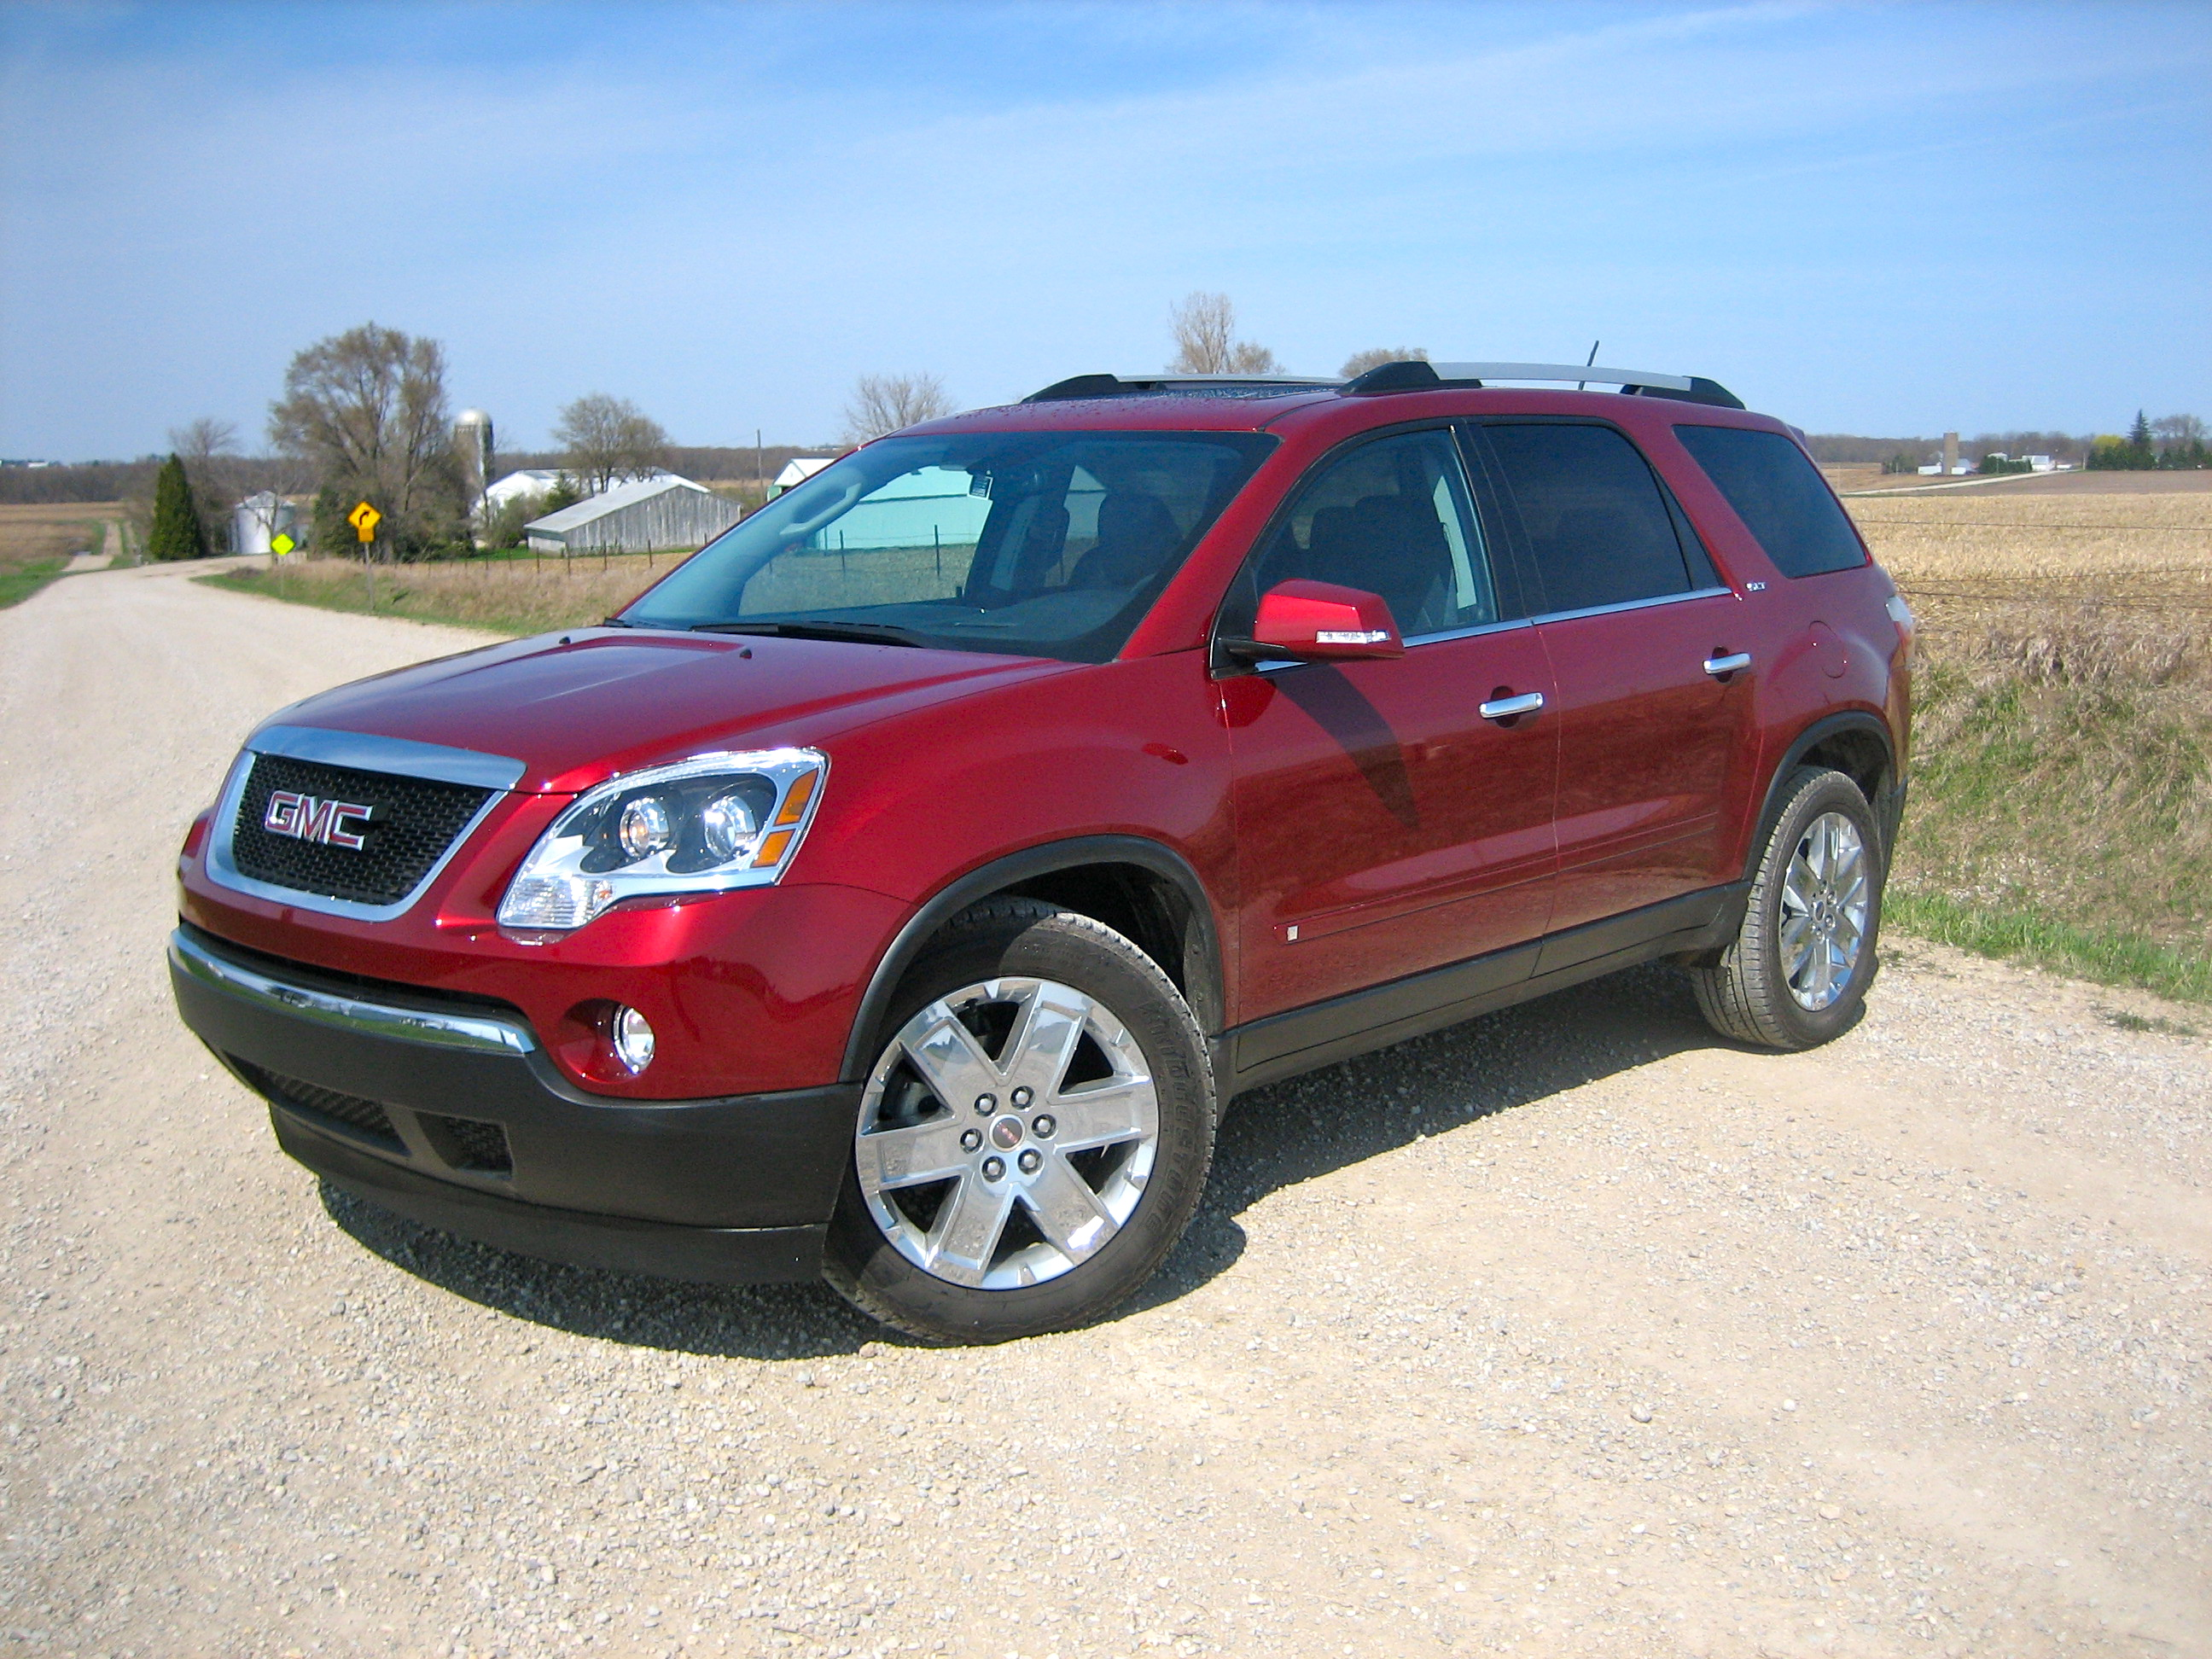 of acadia family a review img mom denali s for gmc